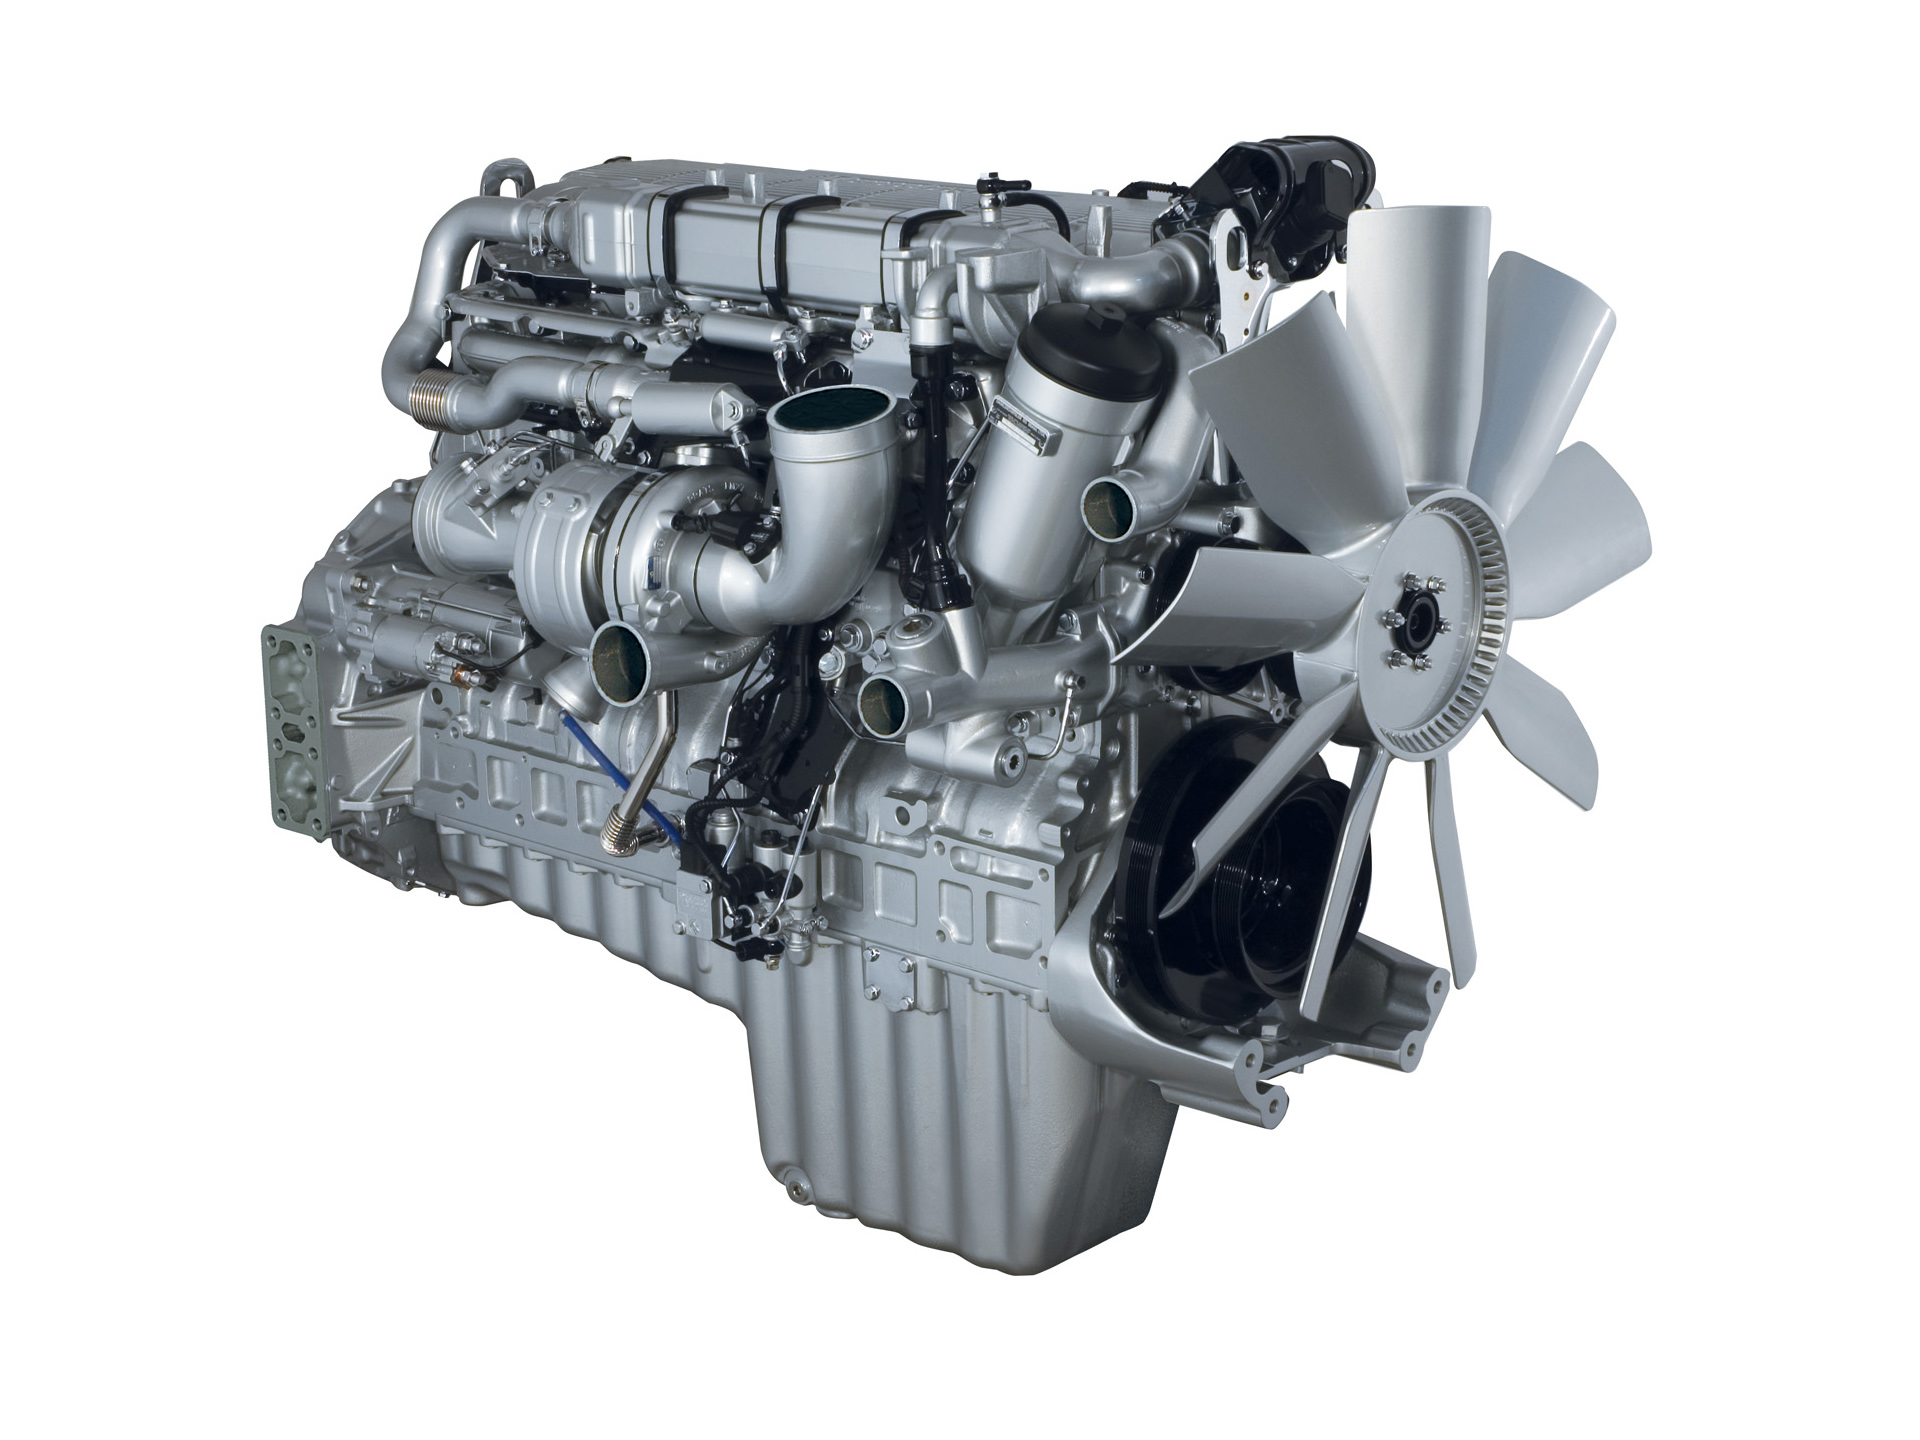 Detroit Diesel Mbe 4000 Engine Photos Photogallery With